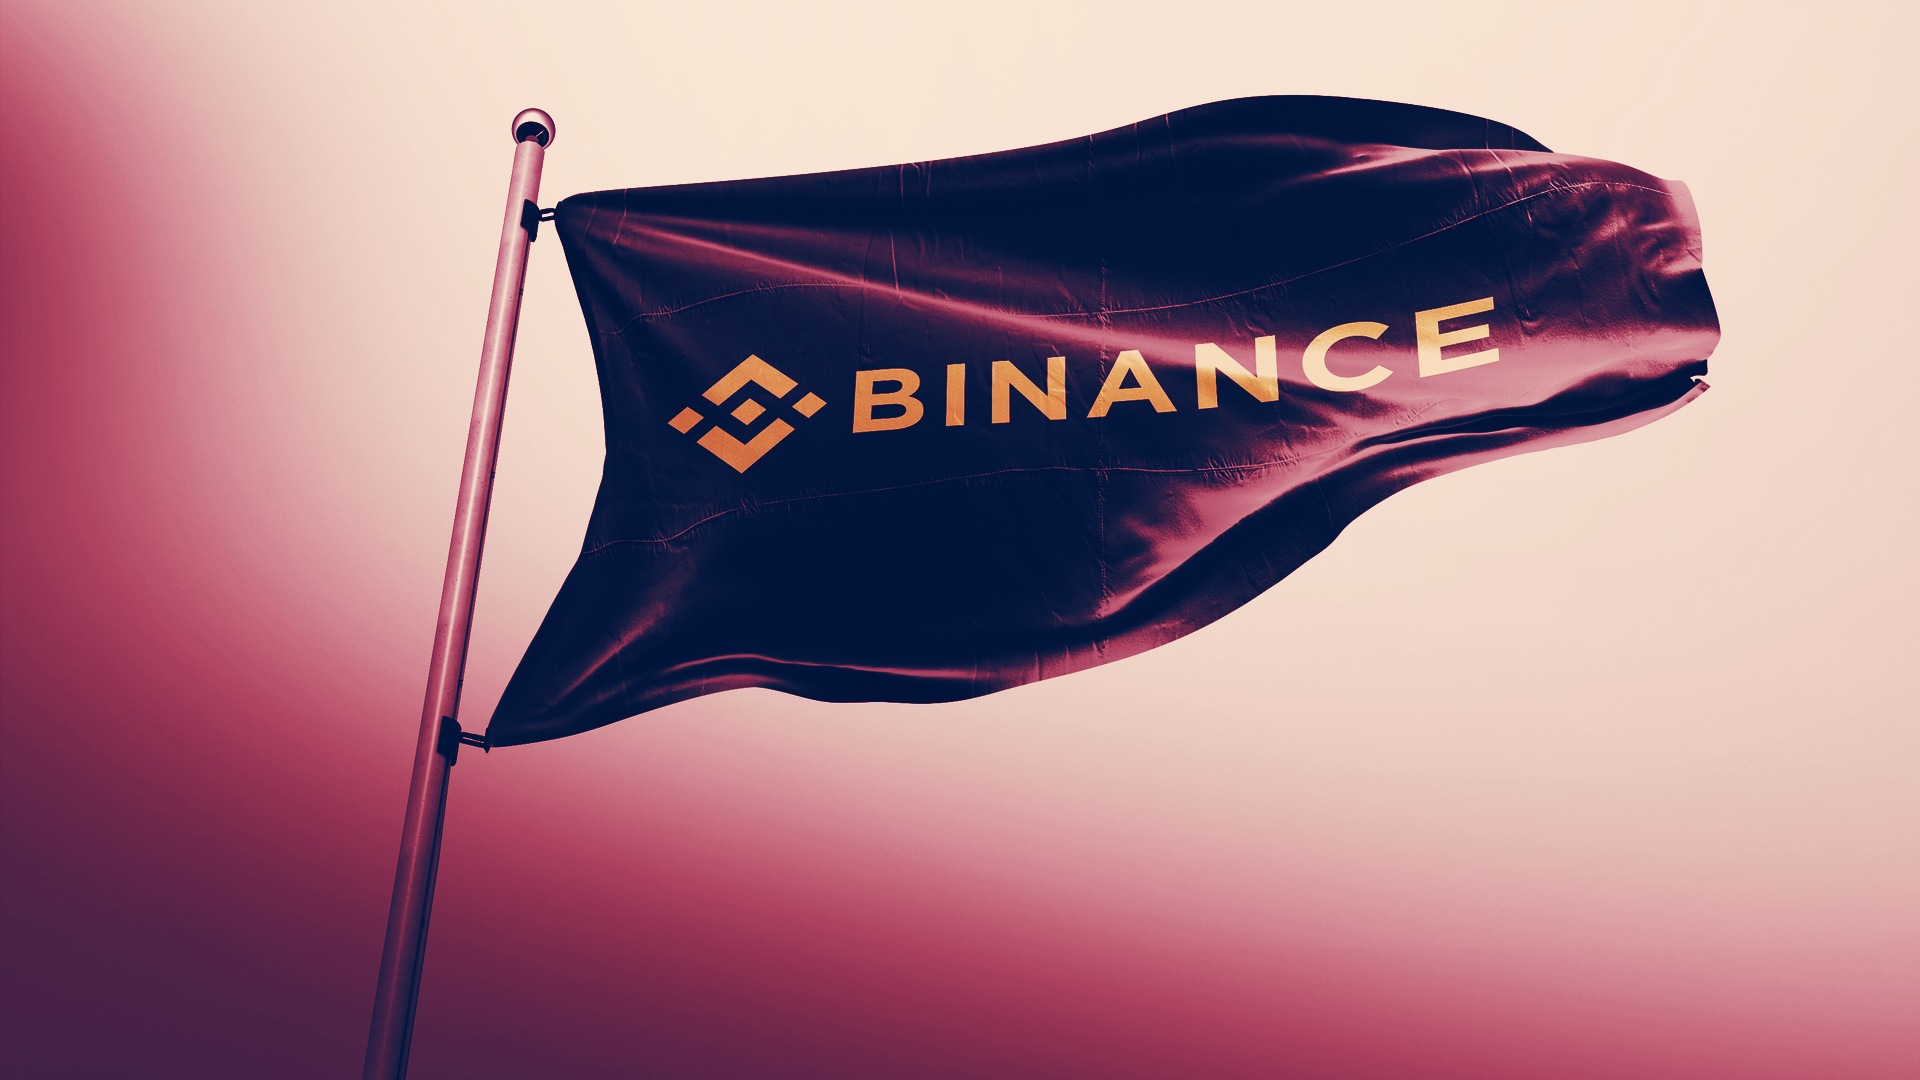 Malaysia Launches Enforcement Action Against 'Illegally Operating' Binance